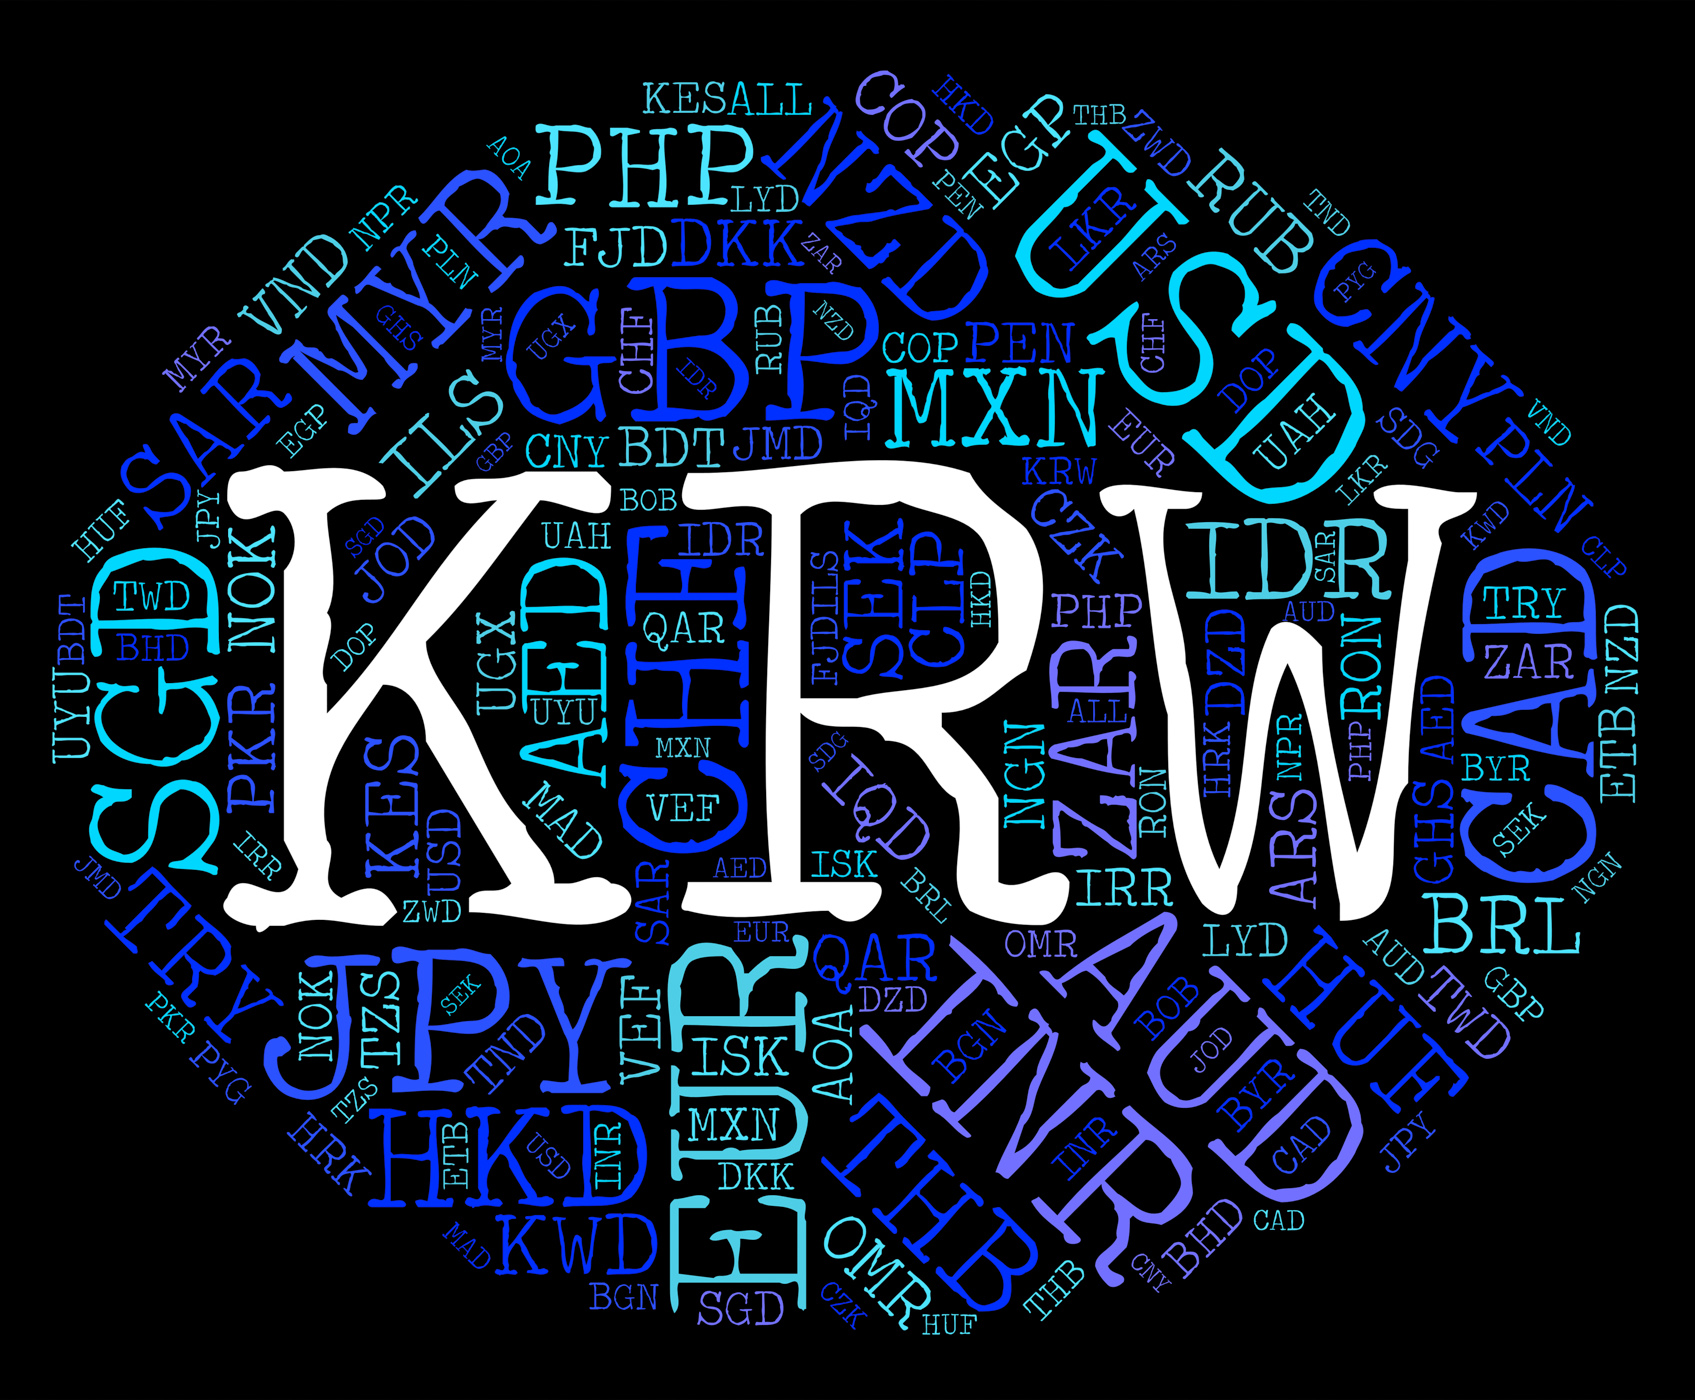 Krw Currency Represents South Korea Won And Exchange, Southkorea, Southkorean, Market, Krw, HQ Photo